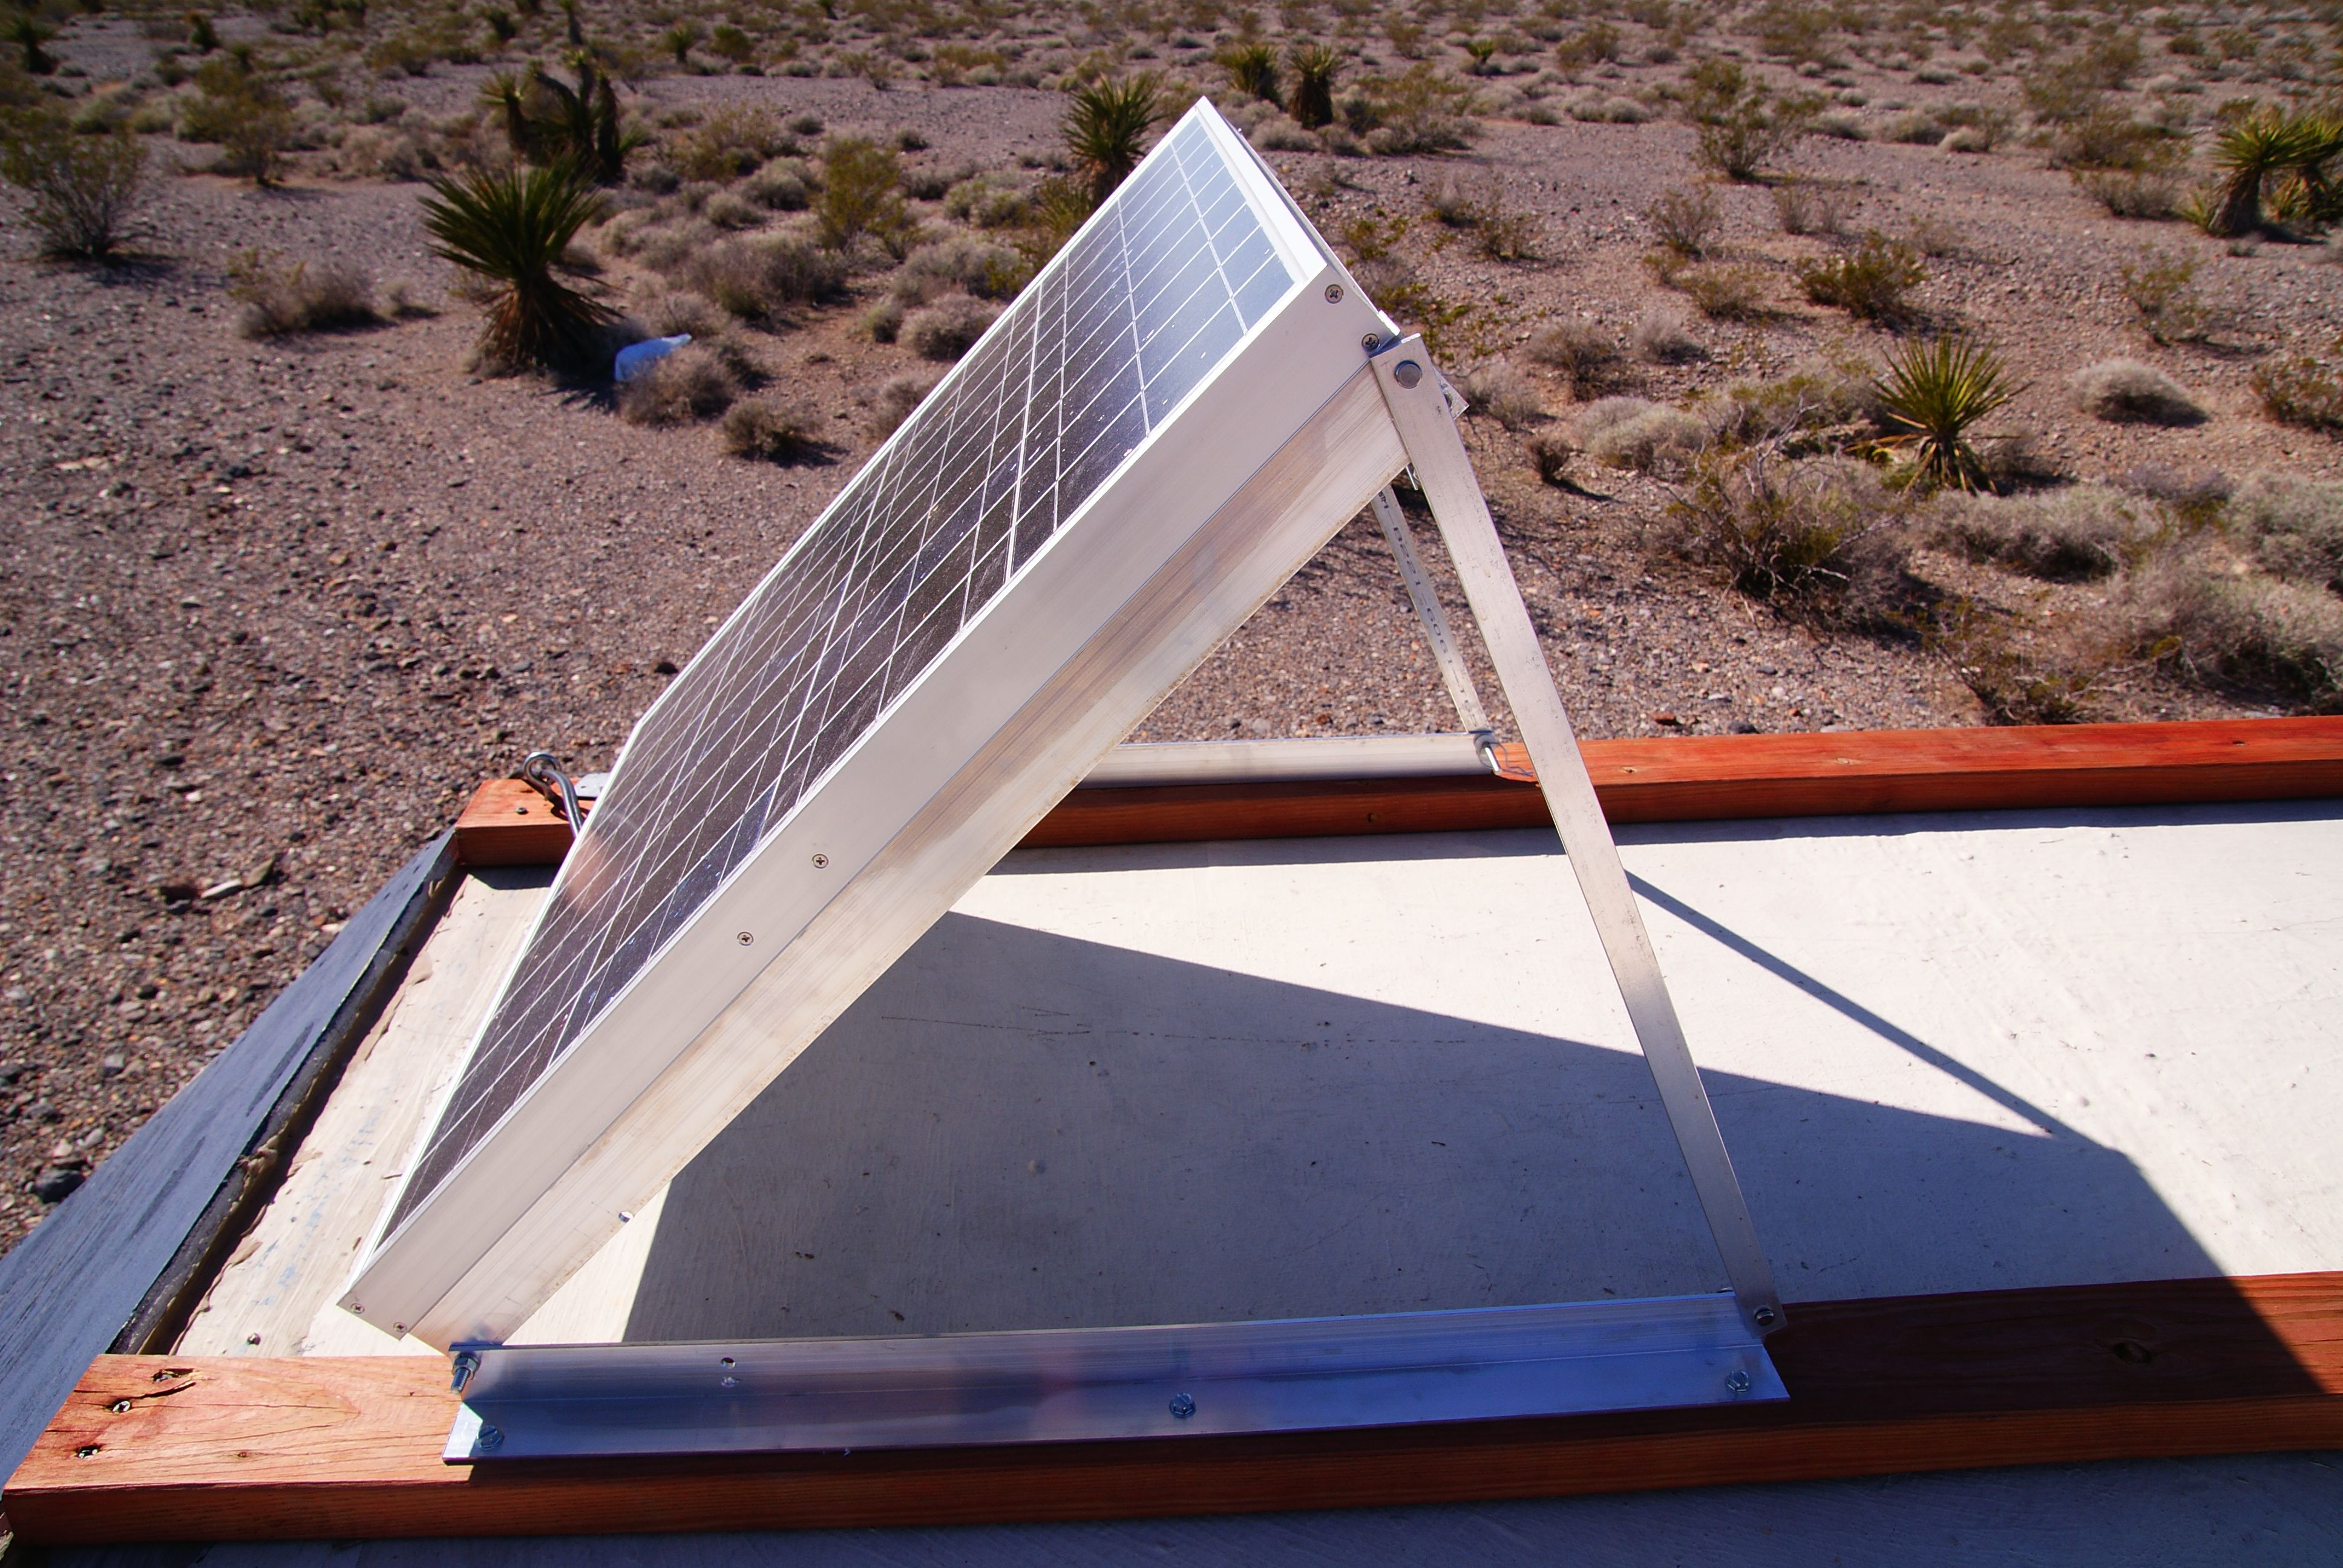 How to Install Solar Panels for electricity in a van or rv